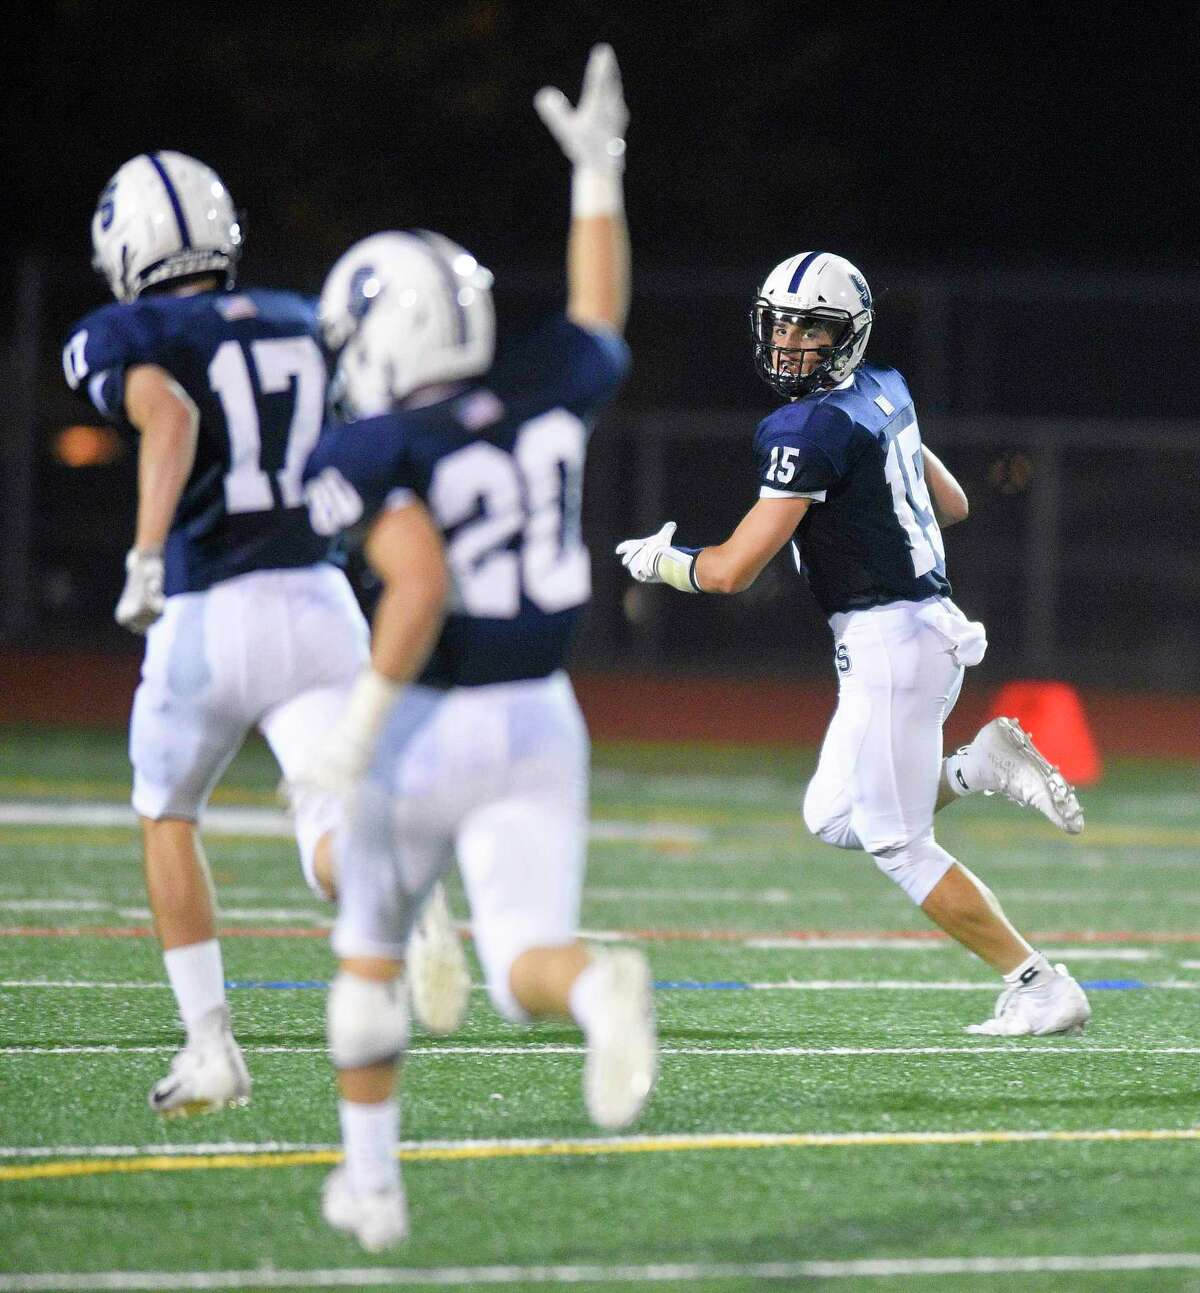 Staple's Jake Thaw returns a punt for a 69 yard touchdown against New Britain in a non-conference football game at Norwalk High School's Testa Field in Norwalk, Conn. on Sept. 21, 2019. Staples won 14-8.